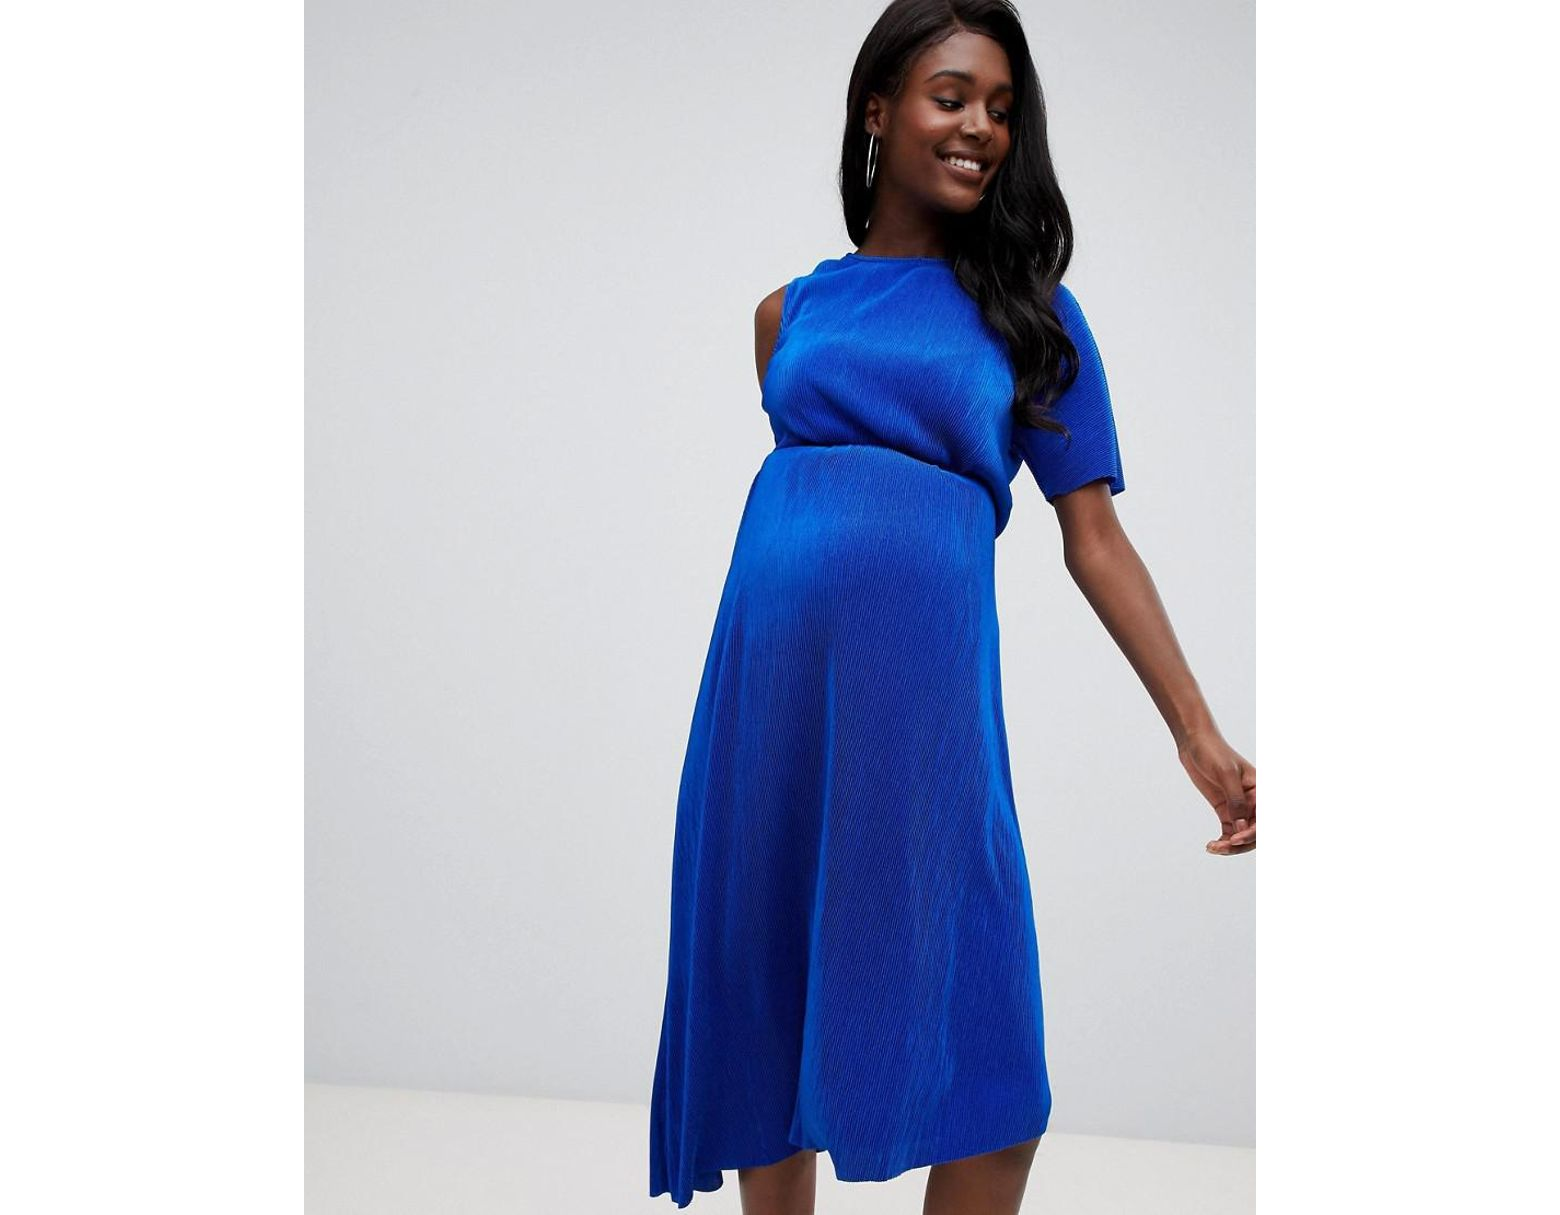 0dcc7ed28a3e4 ASOS Asos Design Maternity Midi Plisse Dress With One Shoulder And Wrap  Back in Blue - Lyst